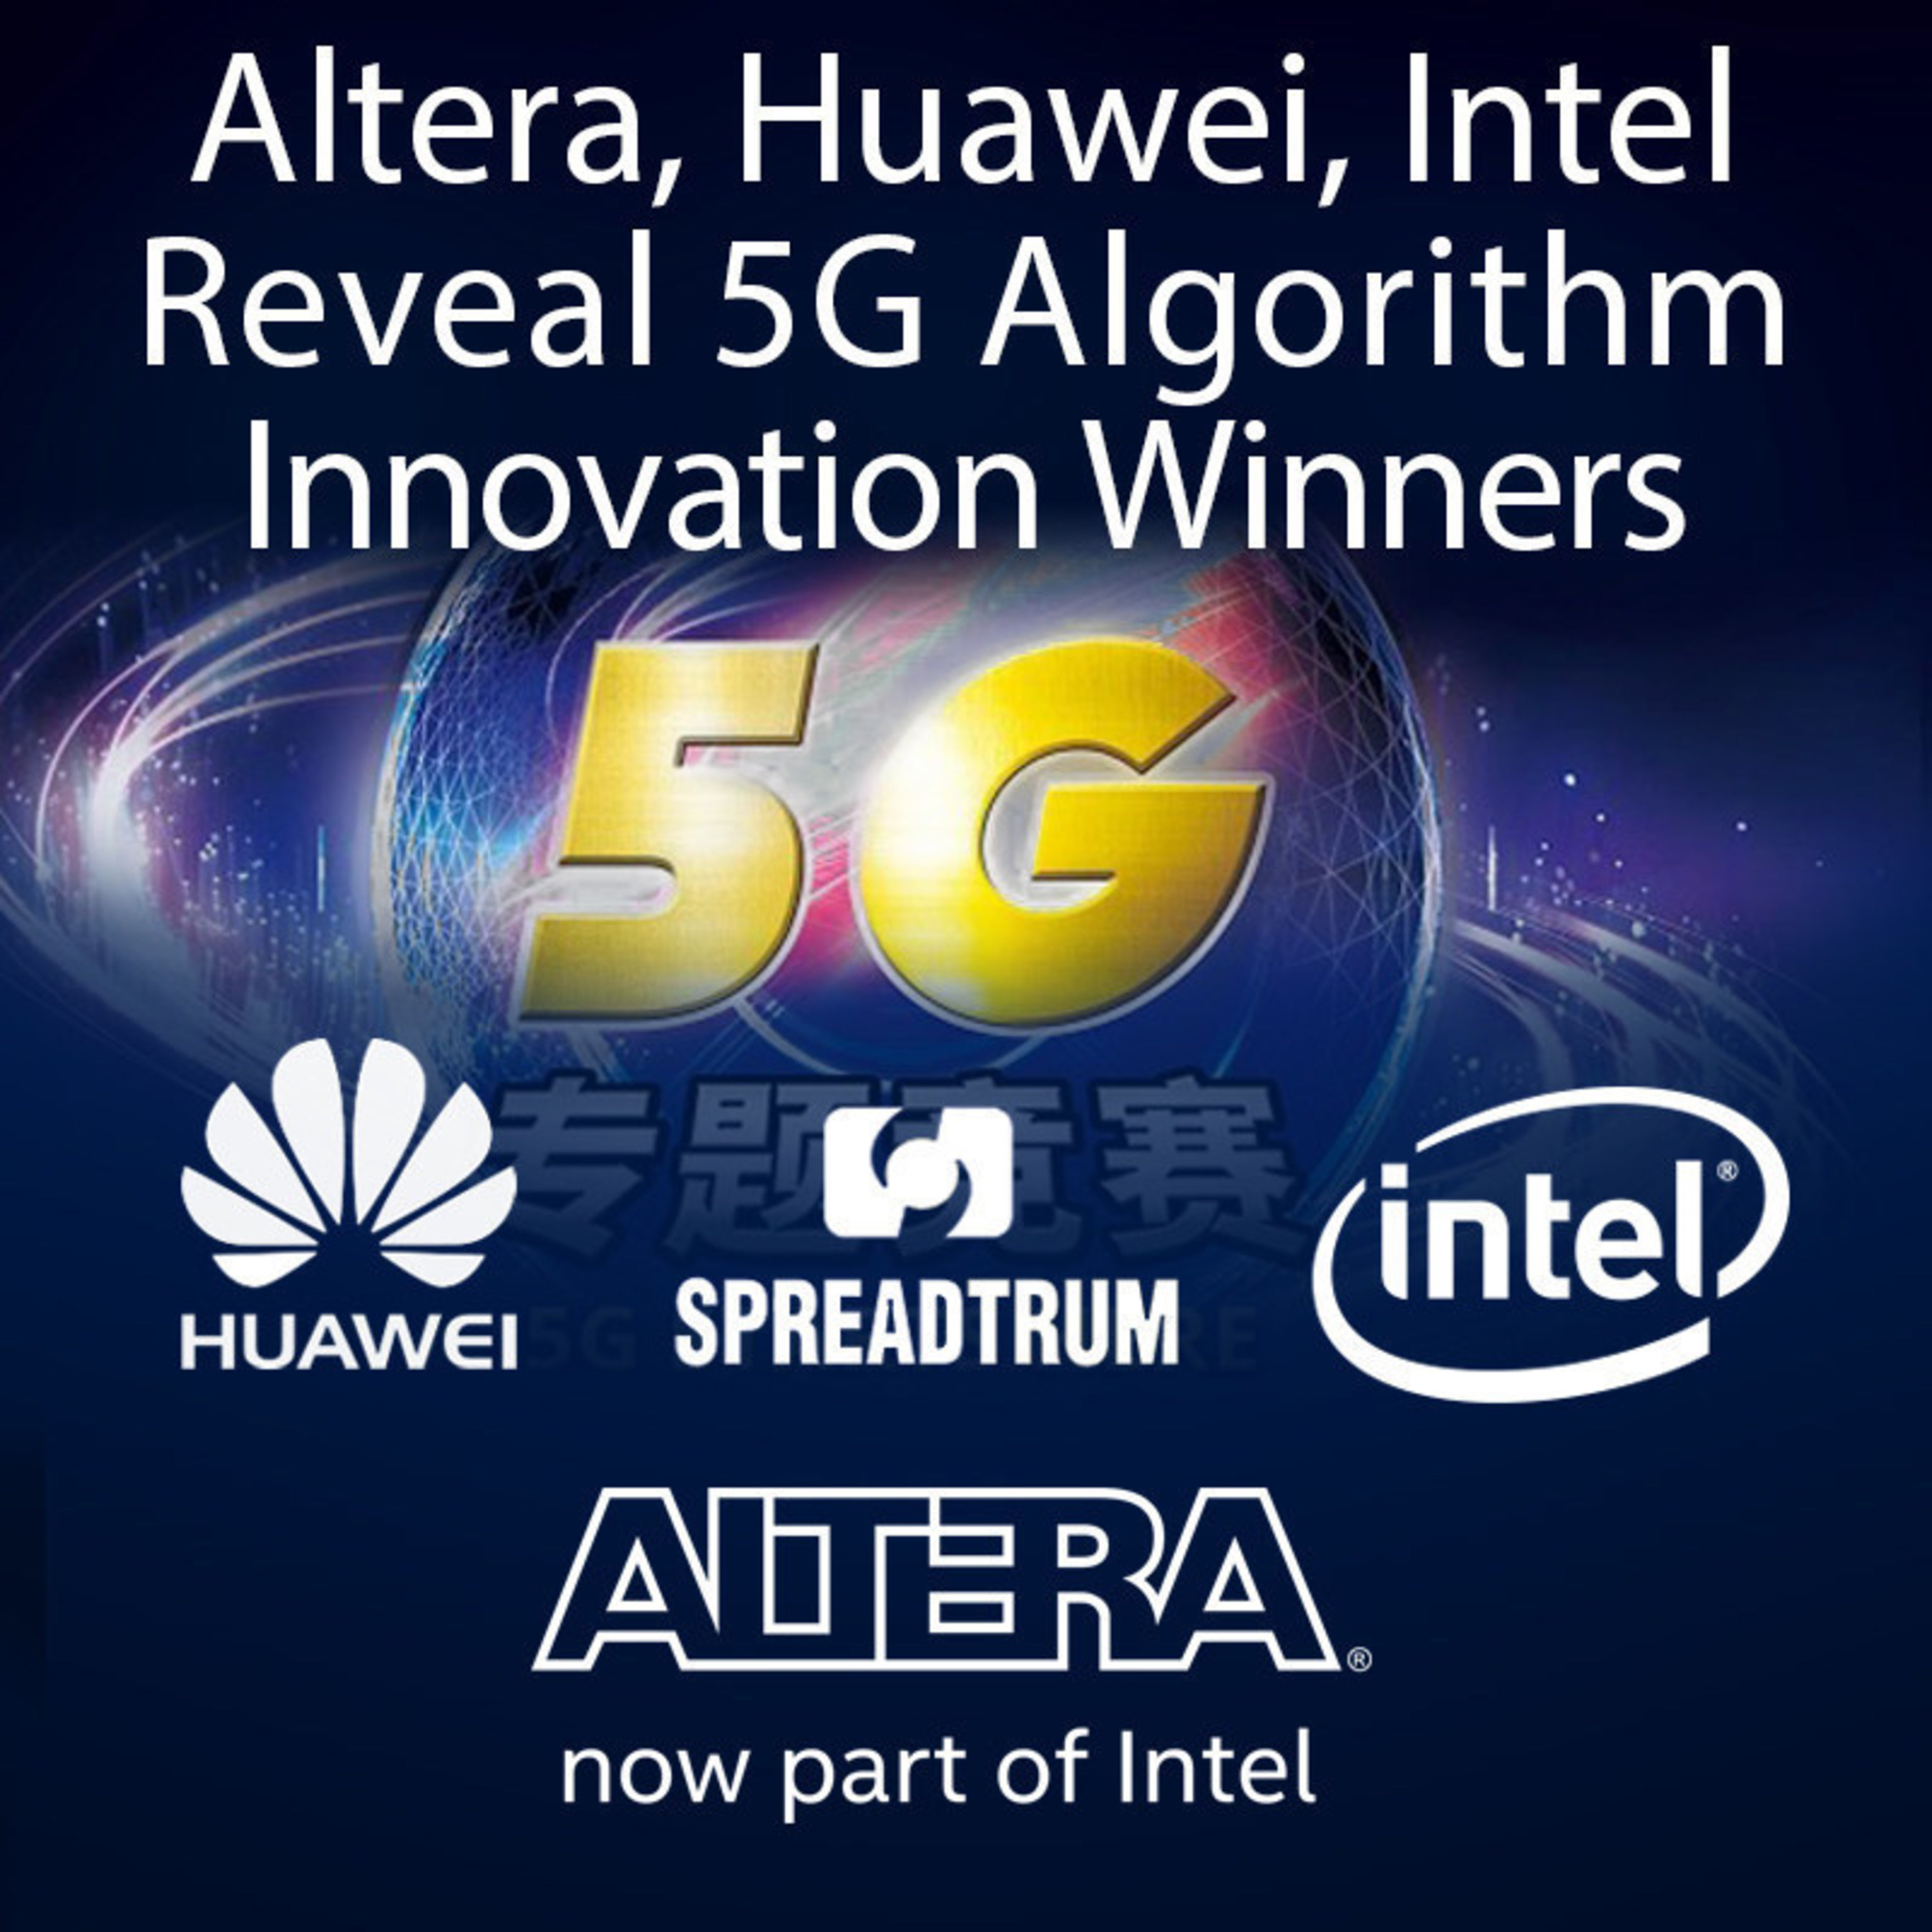 Altera, now a part of Intel Corporation, announced the results of the 5G Algorithm Innovation Competition, the industry's first awards competition to focus on aligning silicon and systems companies with the research community to create a pool of new and innovative ideas to help accelerate 5G, the fifth generation of mobile networks.